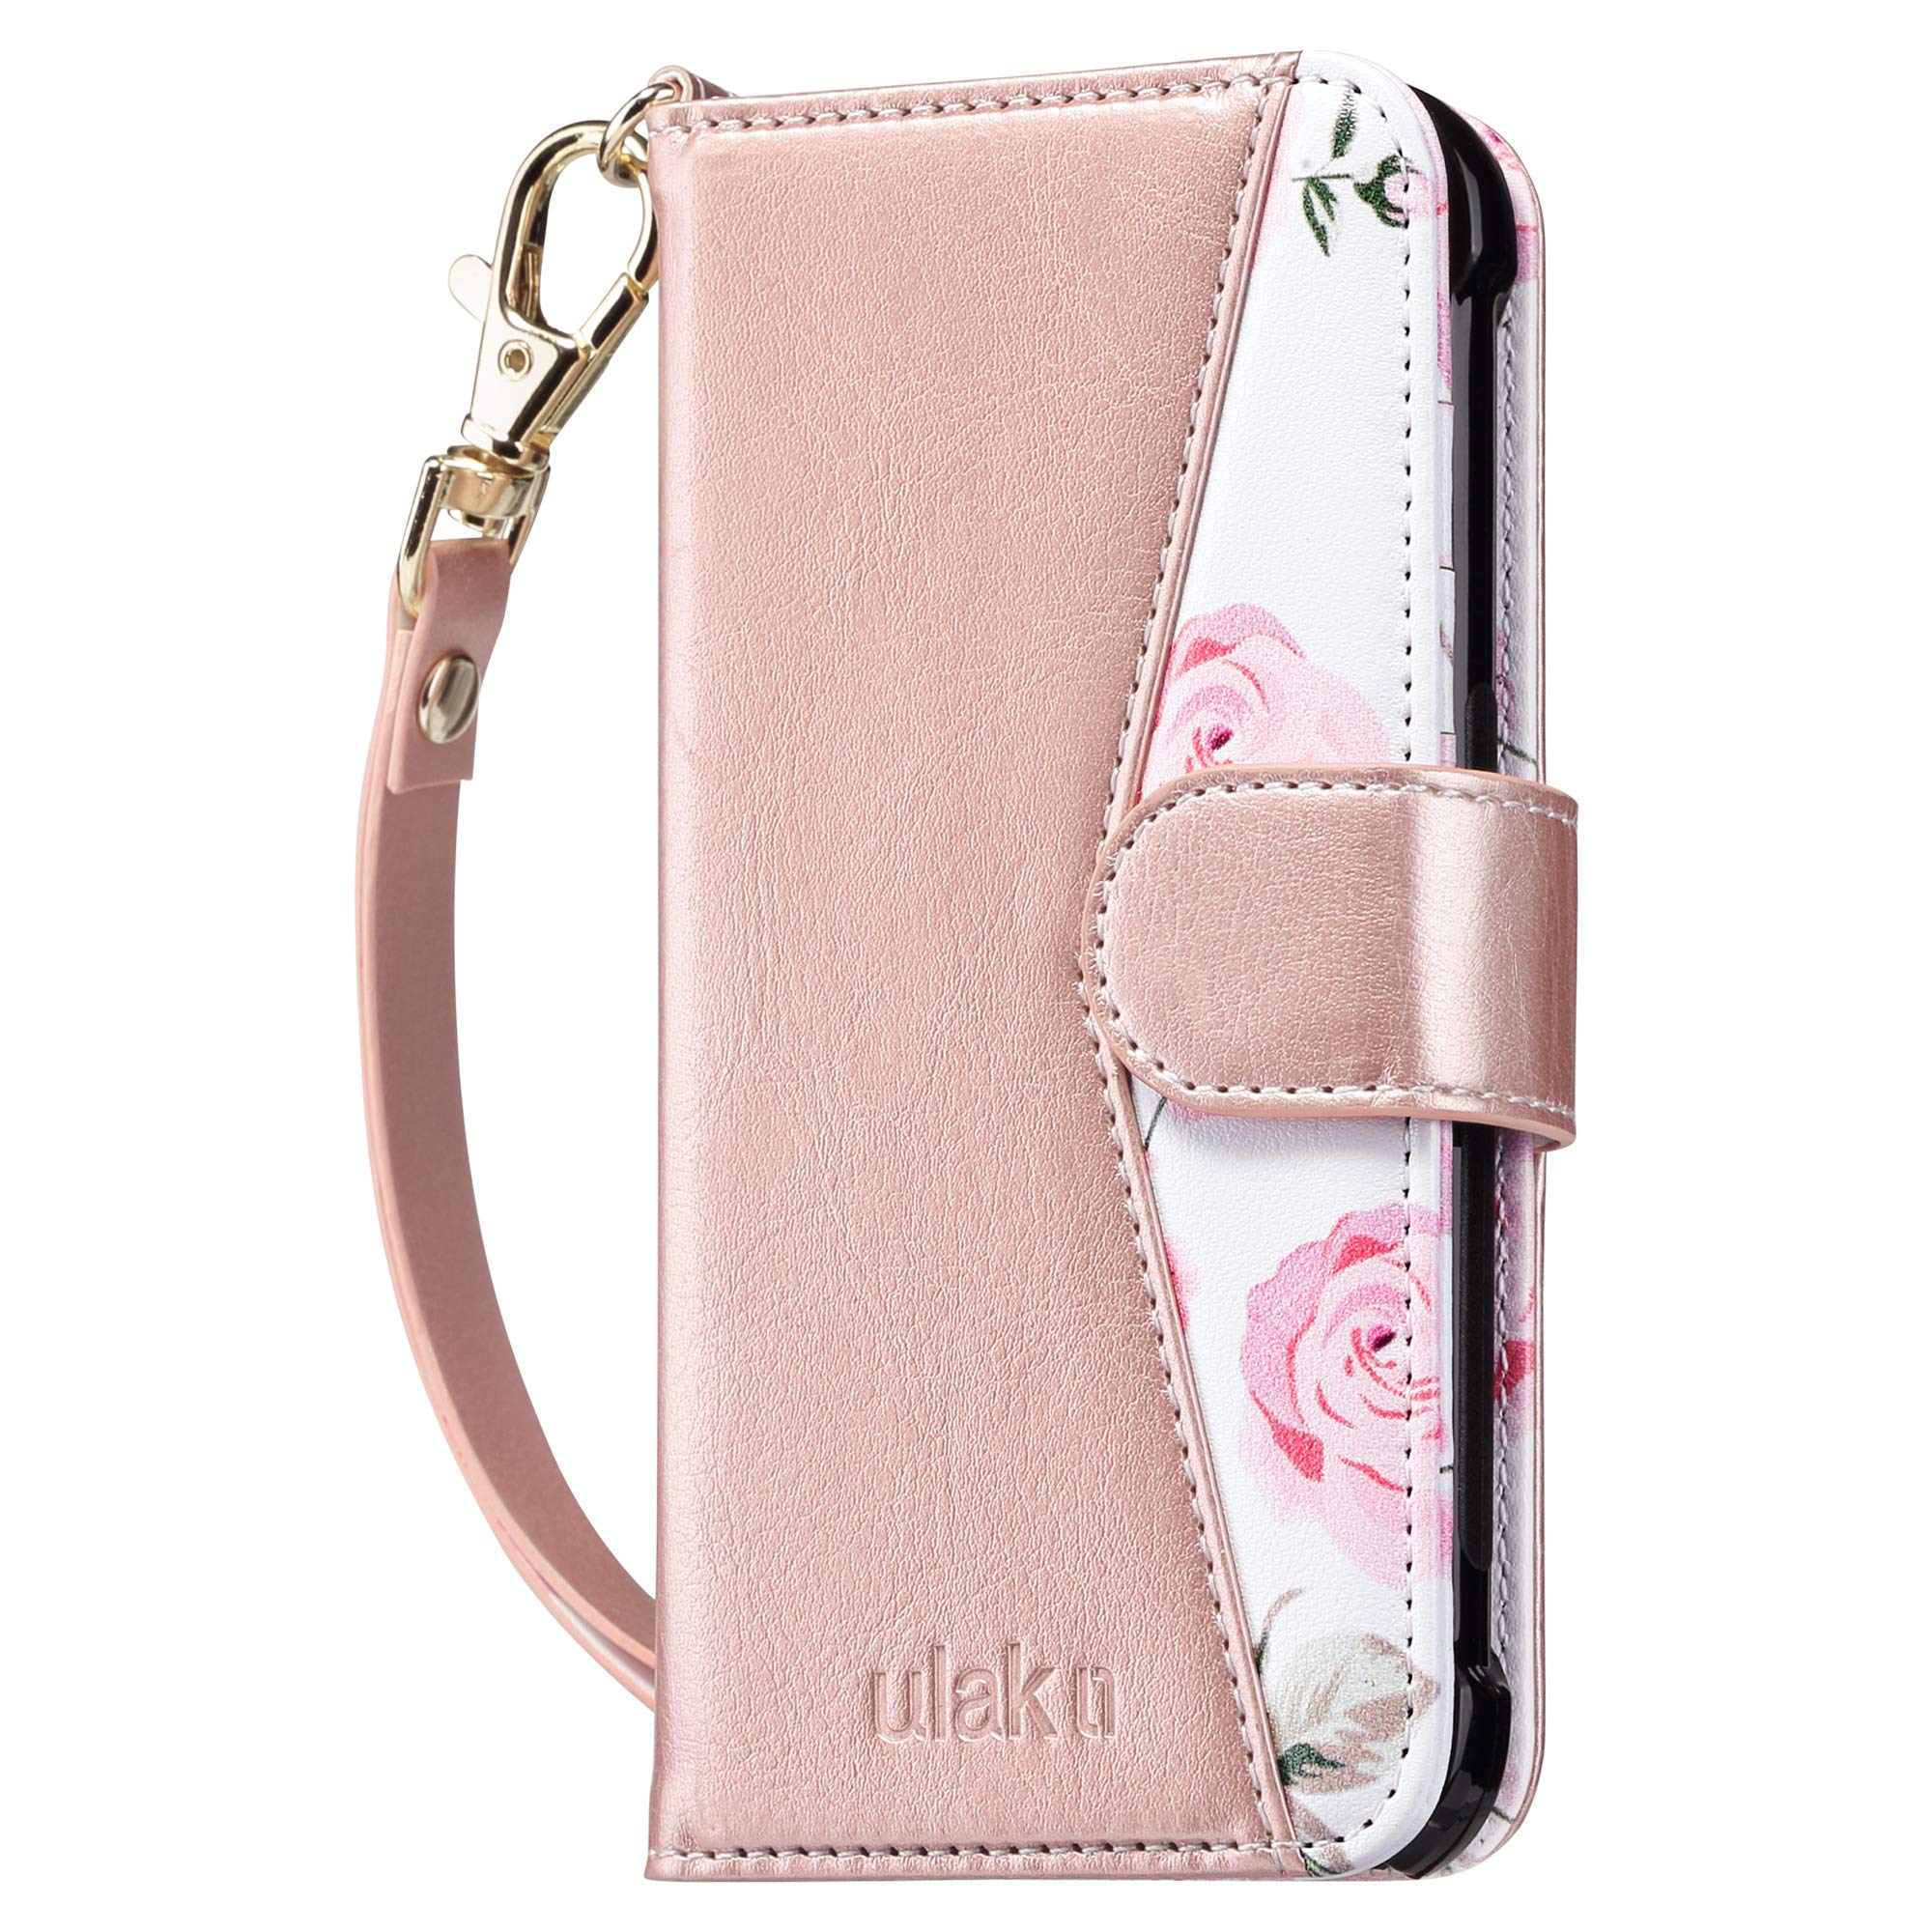 ULAK iPod Touch 7 Wallet Case, iPod Touch 6 Case with Card Holder, Premium PU Leather Magnetic Closure Protective Folio Cover for iPod Touch 7th/6th/5th Generation, Rose Gold/Floral